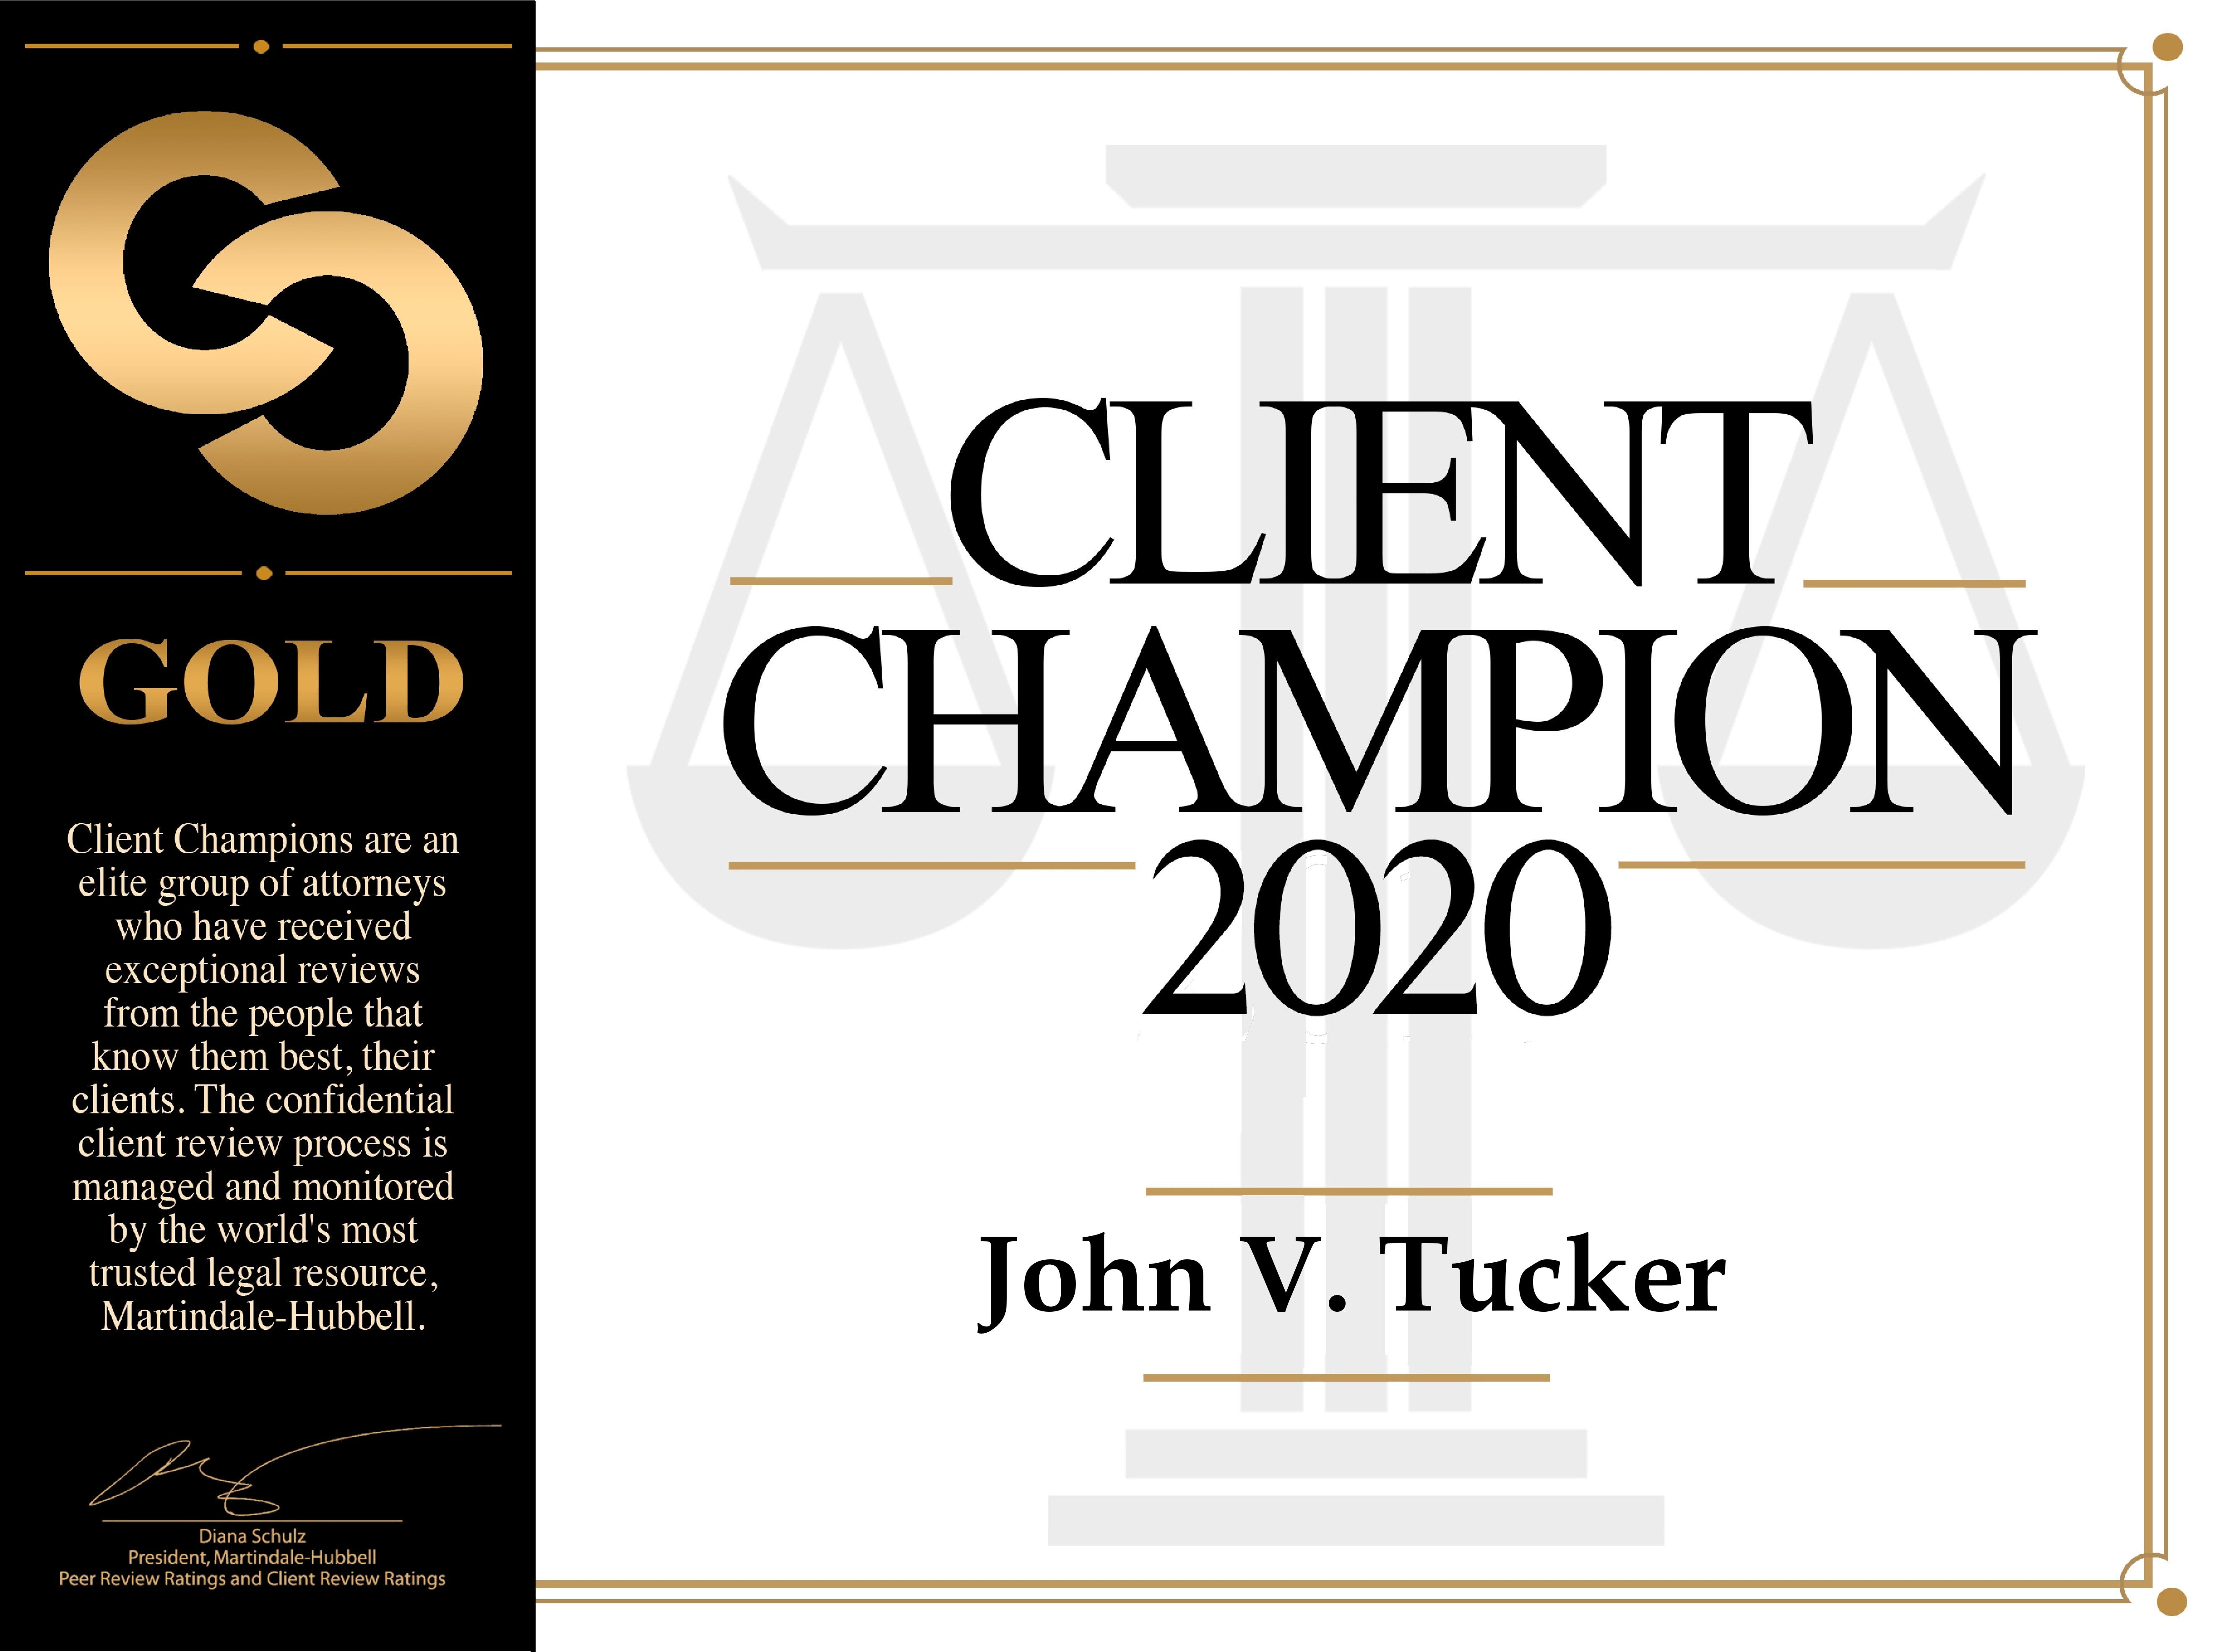 Graphic of Martindale-Hubbell Client Champion badge